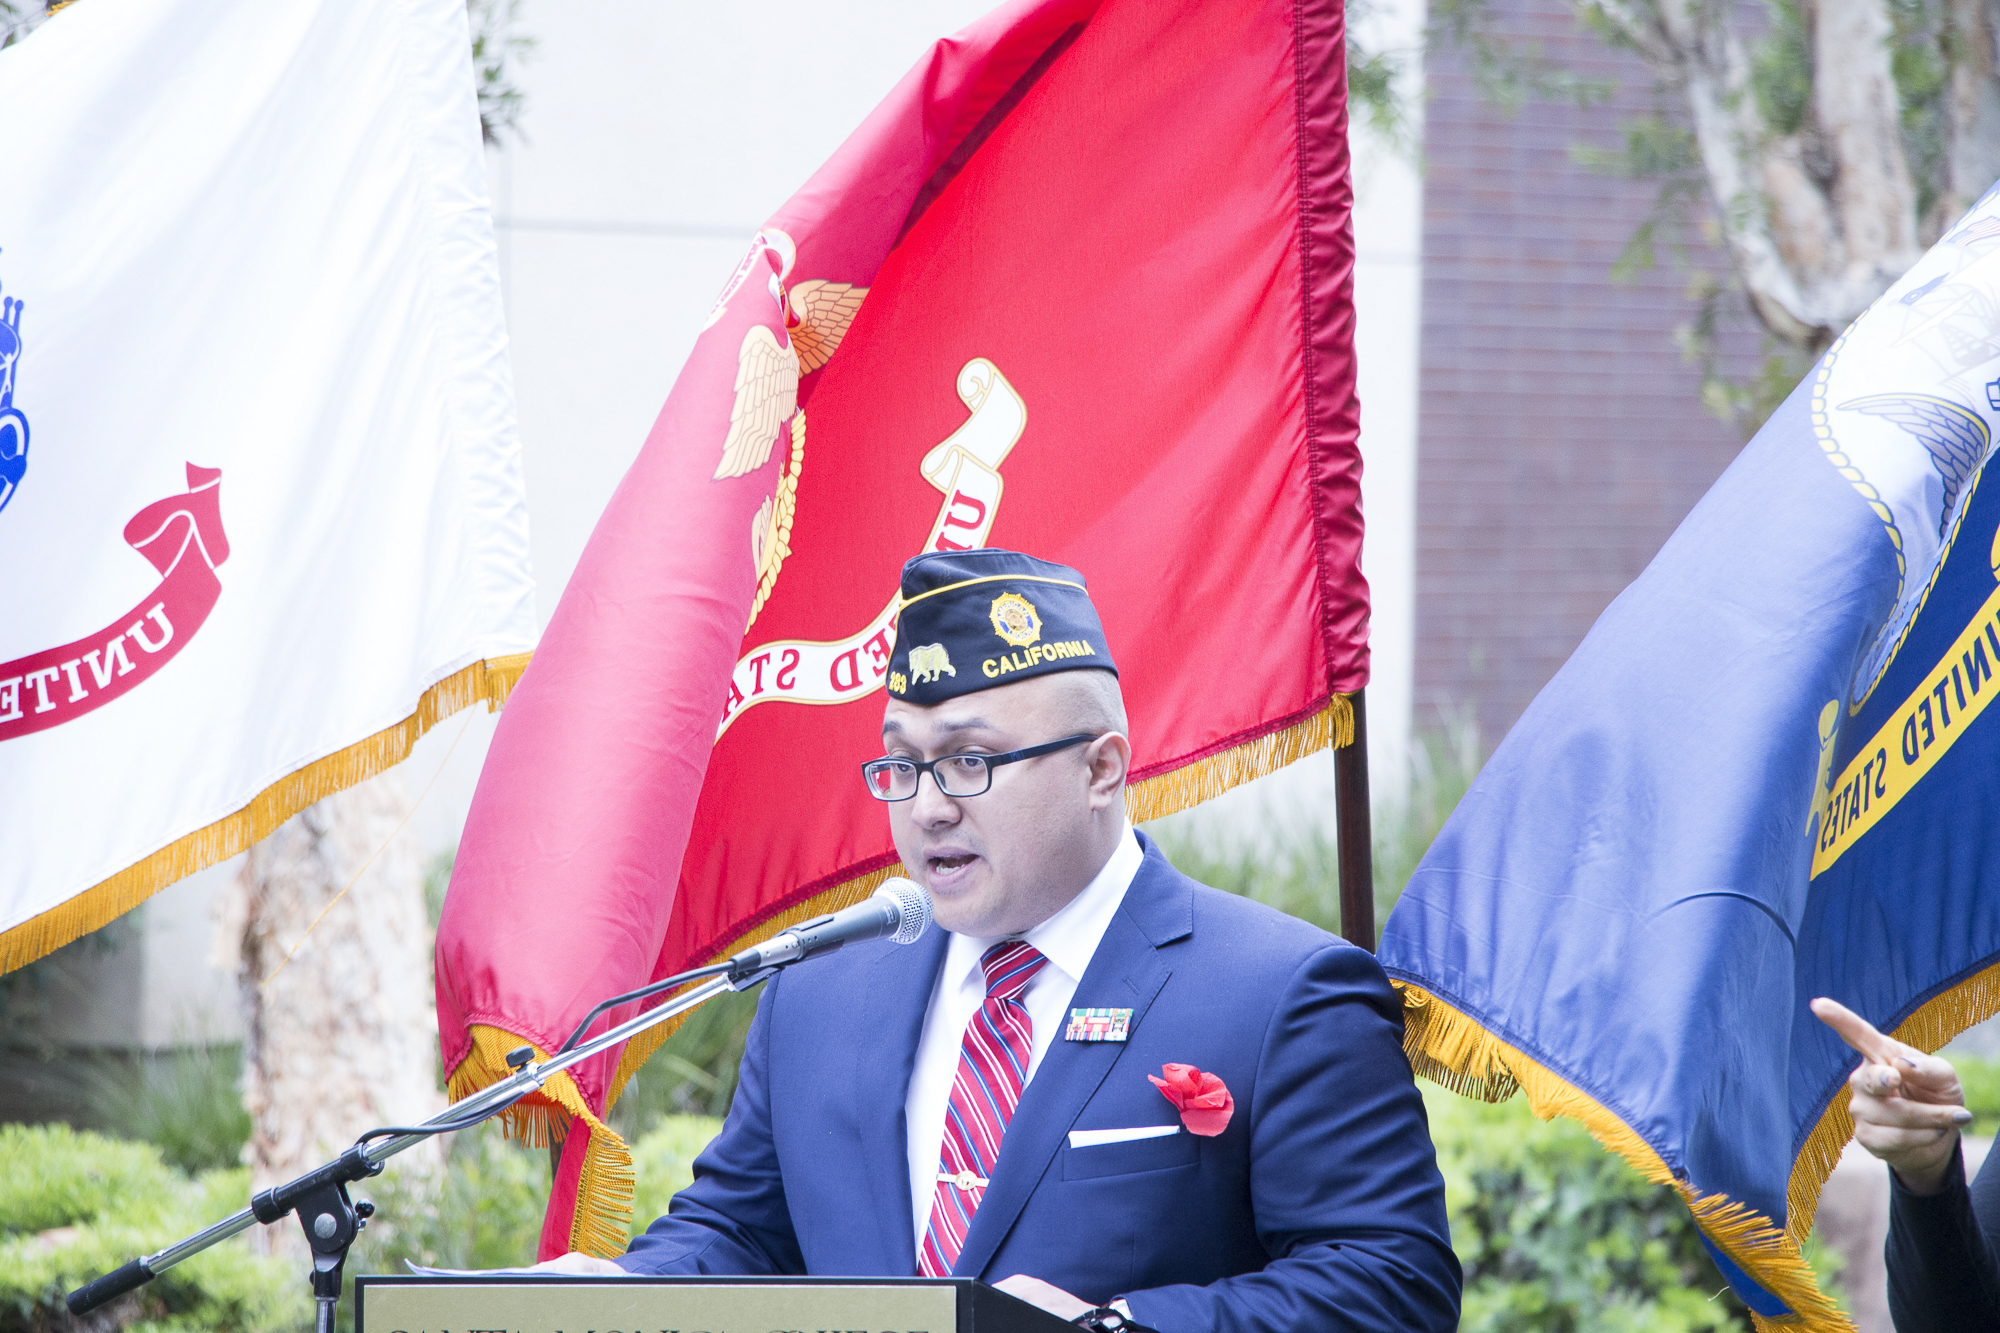 Glen Pena,, a Marine veteran speaks about those who have lost thier lives in the line of duty at Santa Monica College's Memorial Day Commemoration on Thursday, May 24, 2018 in Santa Monica, California. (Wilson Gomez/Corsair Photo)